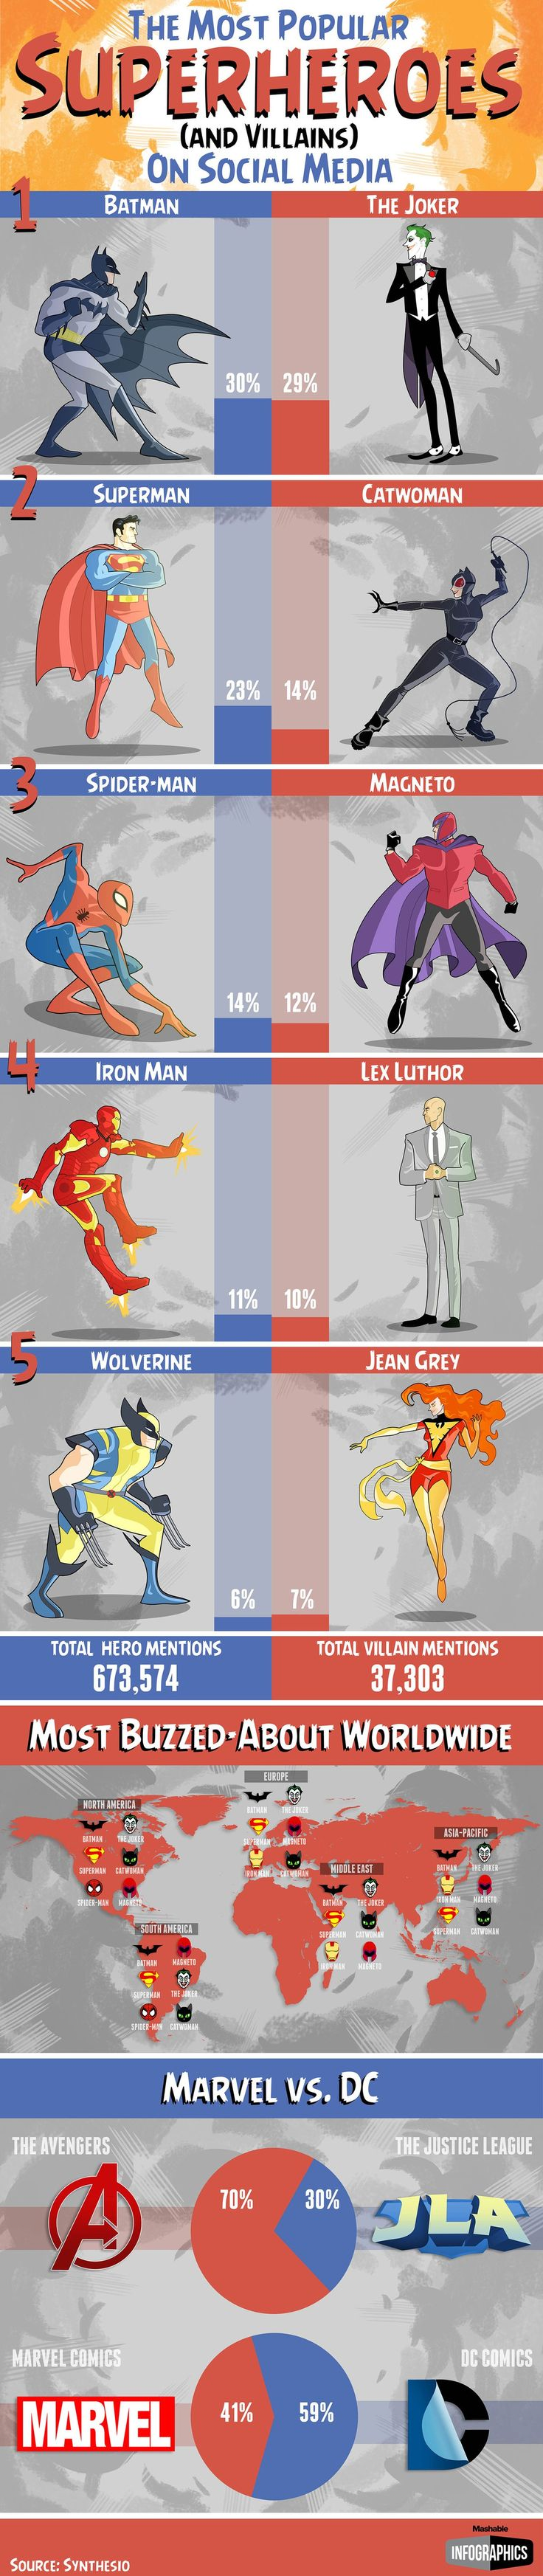 Which heroes and villains are the most popular?